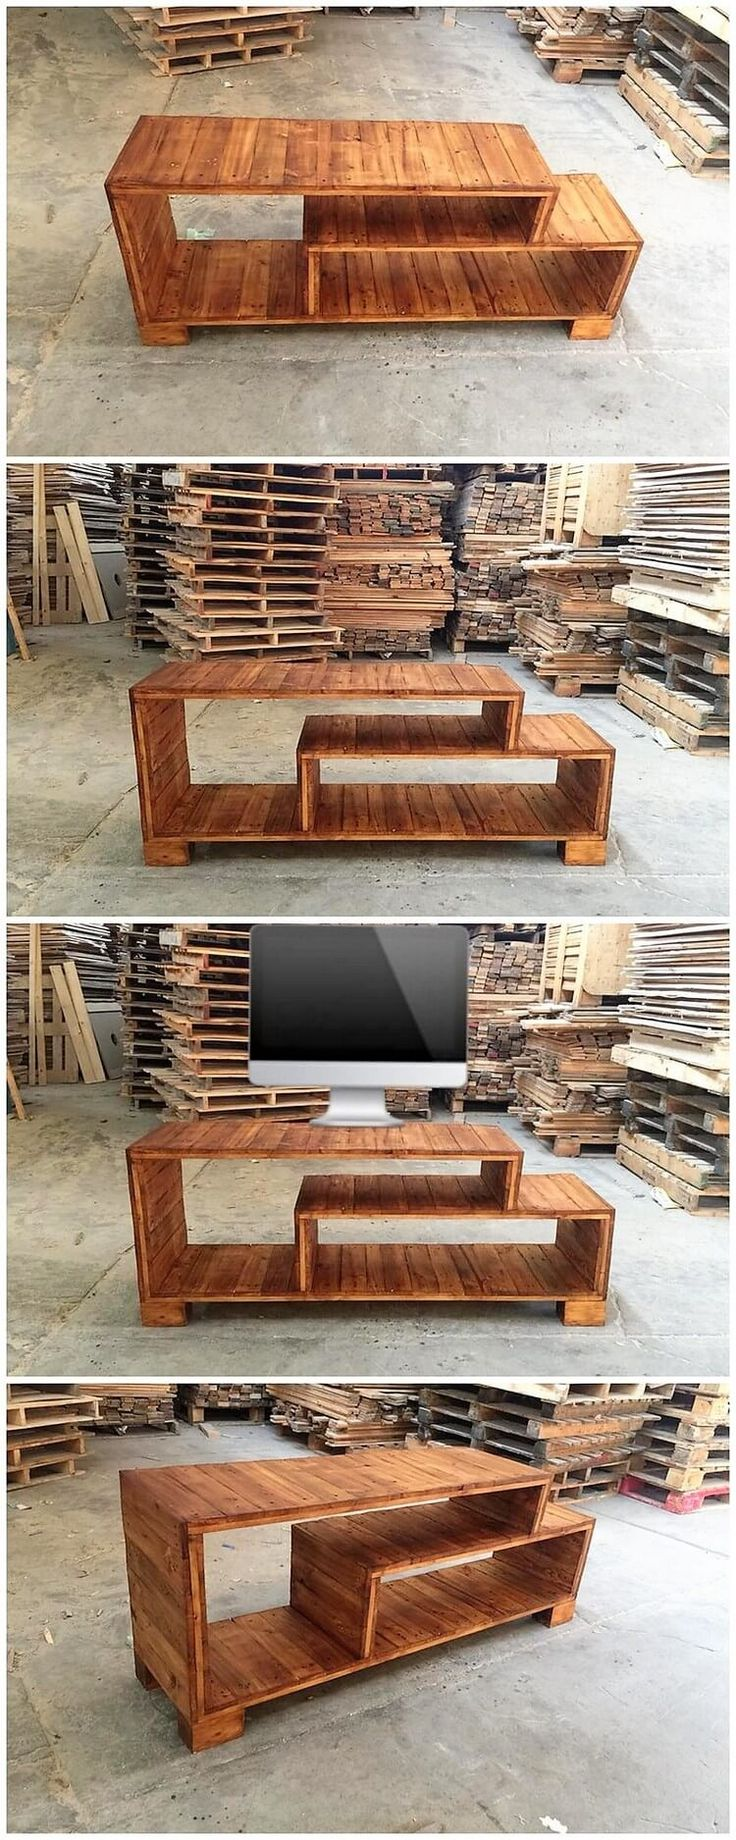 Here comes another interesting idea of the wood pallet creation for you which you would surely be finding so artistic and useful in so many purposes. You can name it as the TV stand creation that can be ideally used for setting up your decoration accessories.